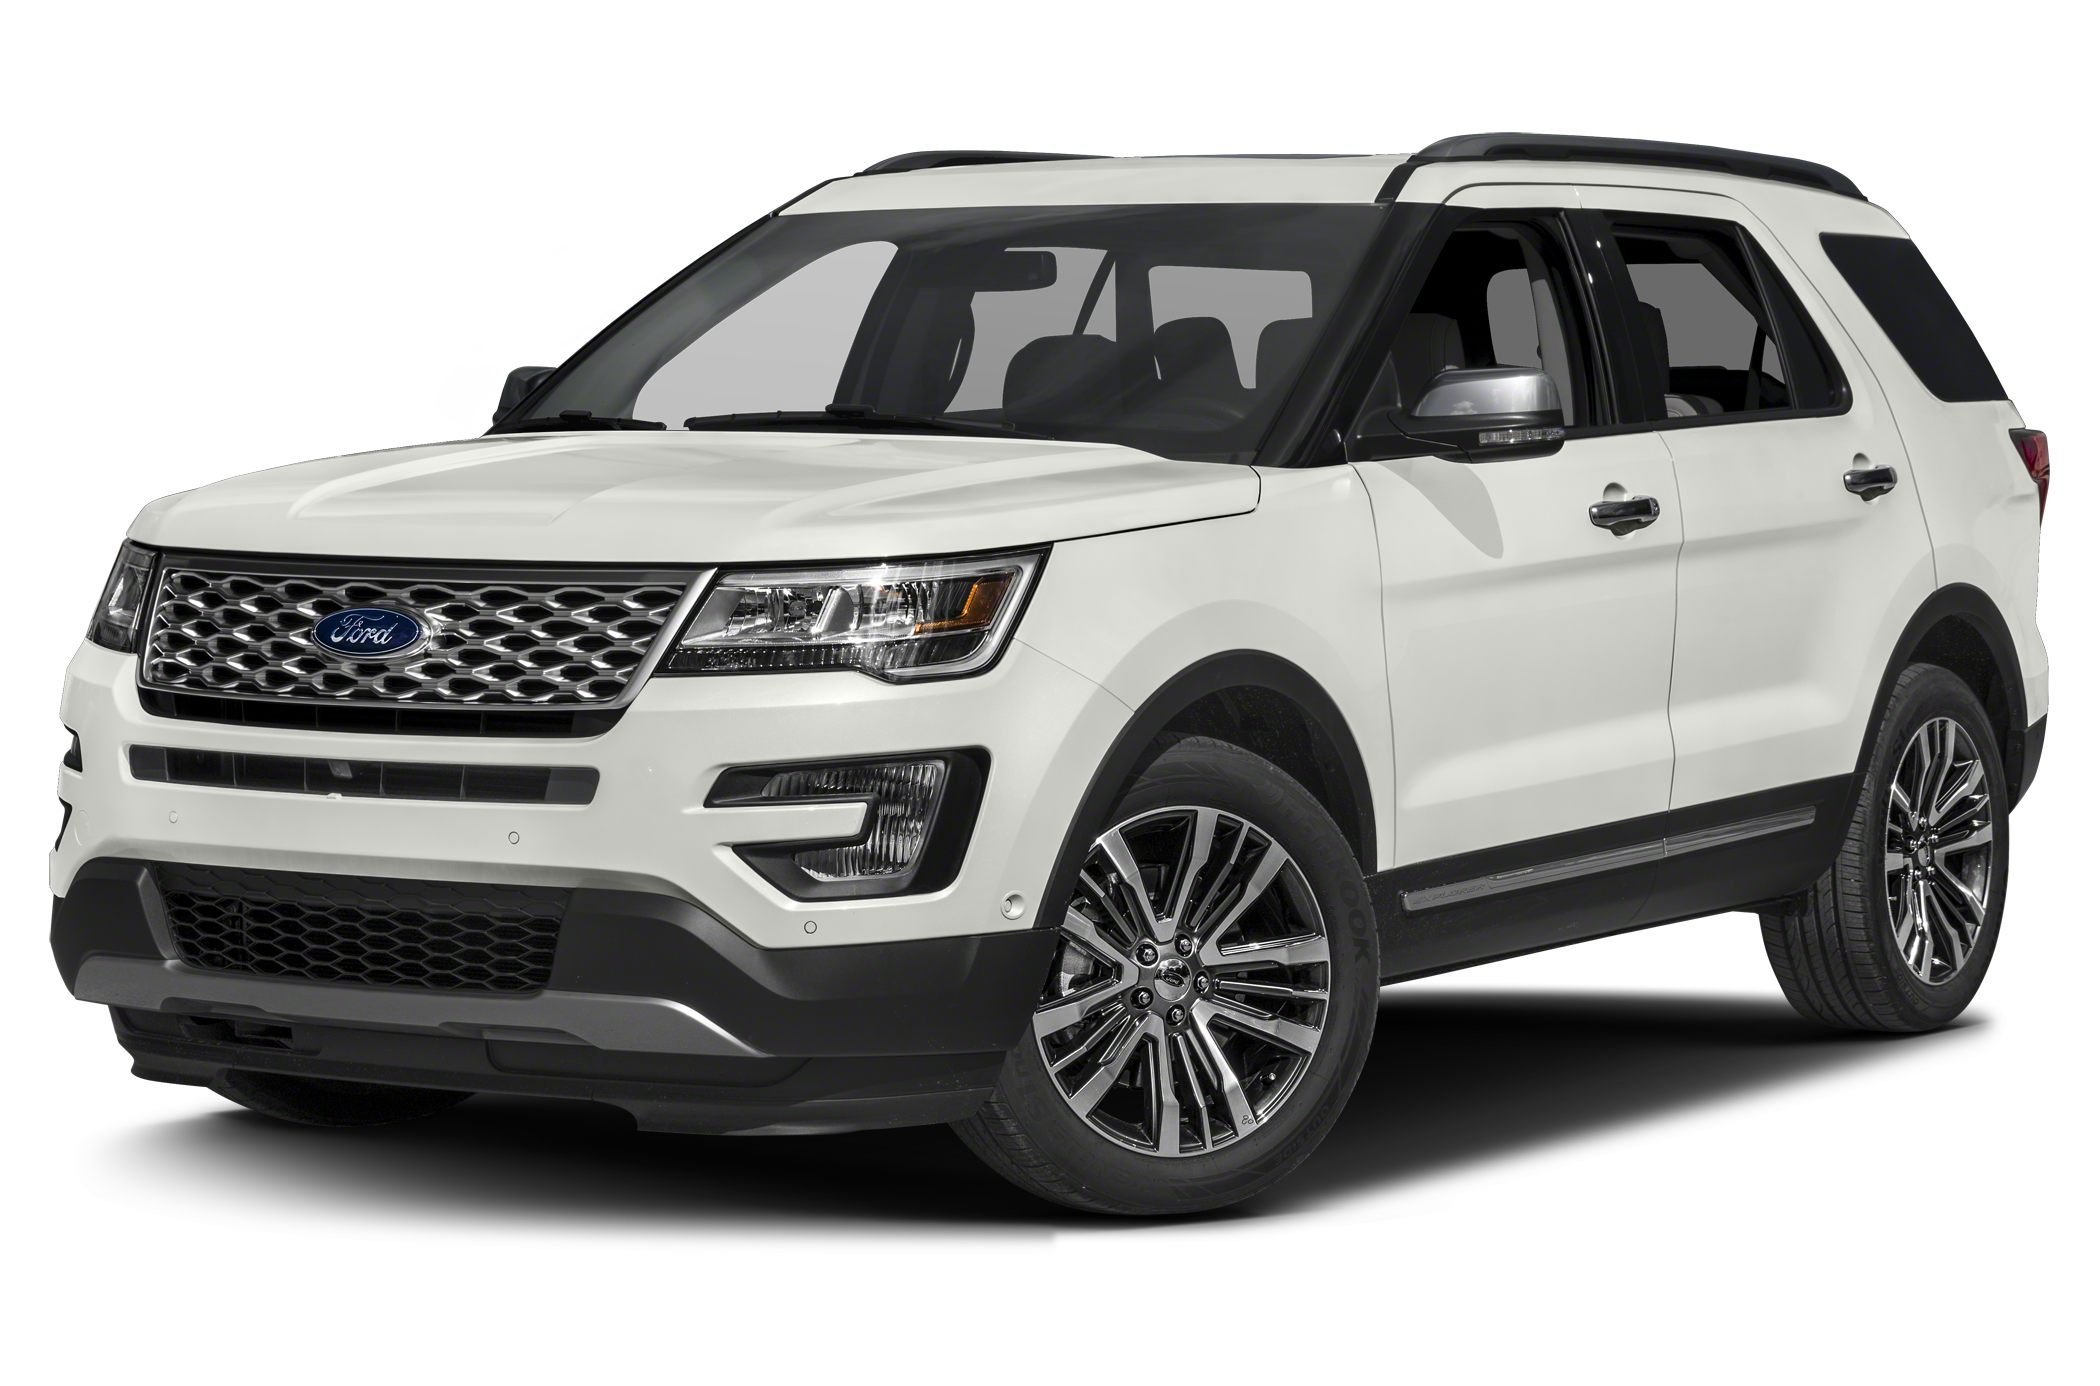 2017 Ford Explorer Platinum 2 YEARS MAINTENANCE INCLUDED WITH EVERY VEHICLE PURCHASED Want more ro